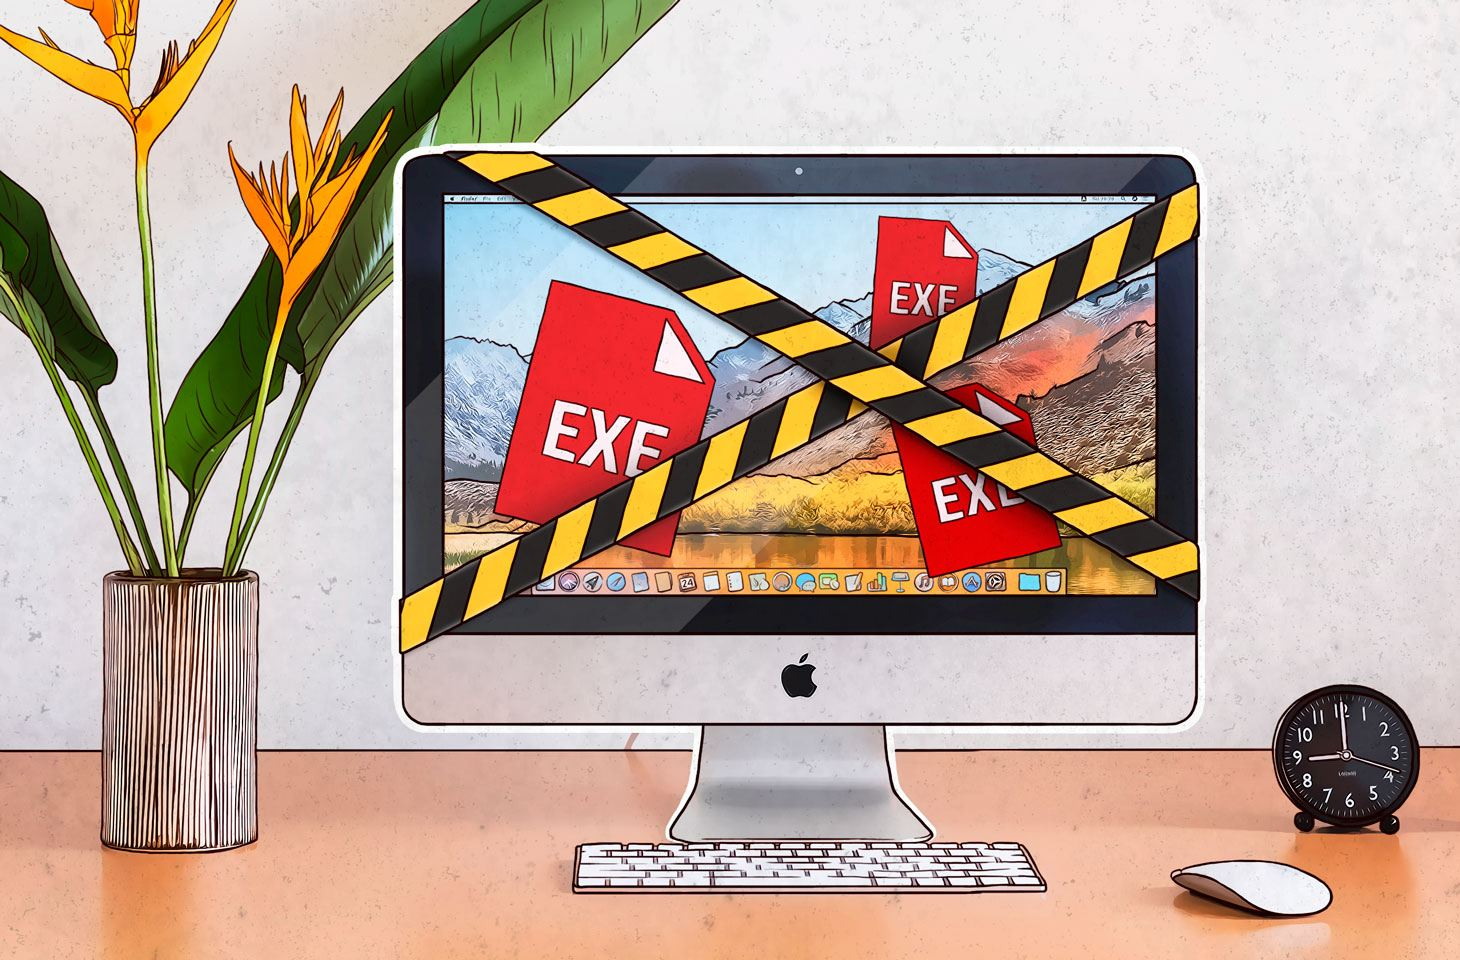 EXE files can pose a risk not only in Windows, but in macOS too